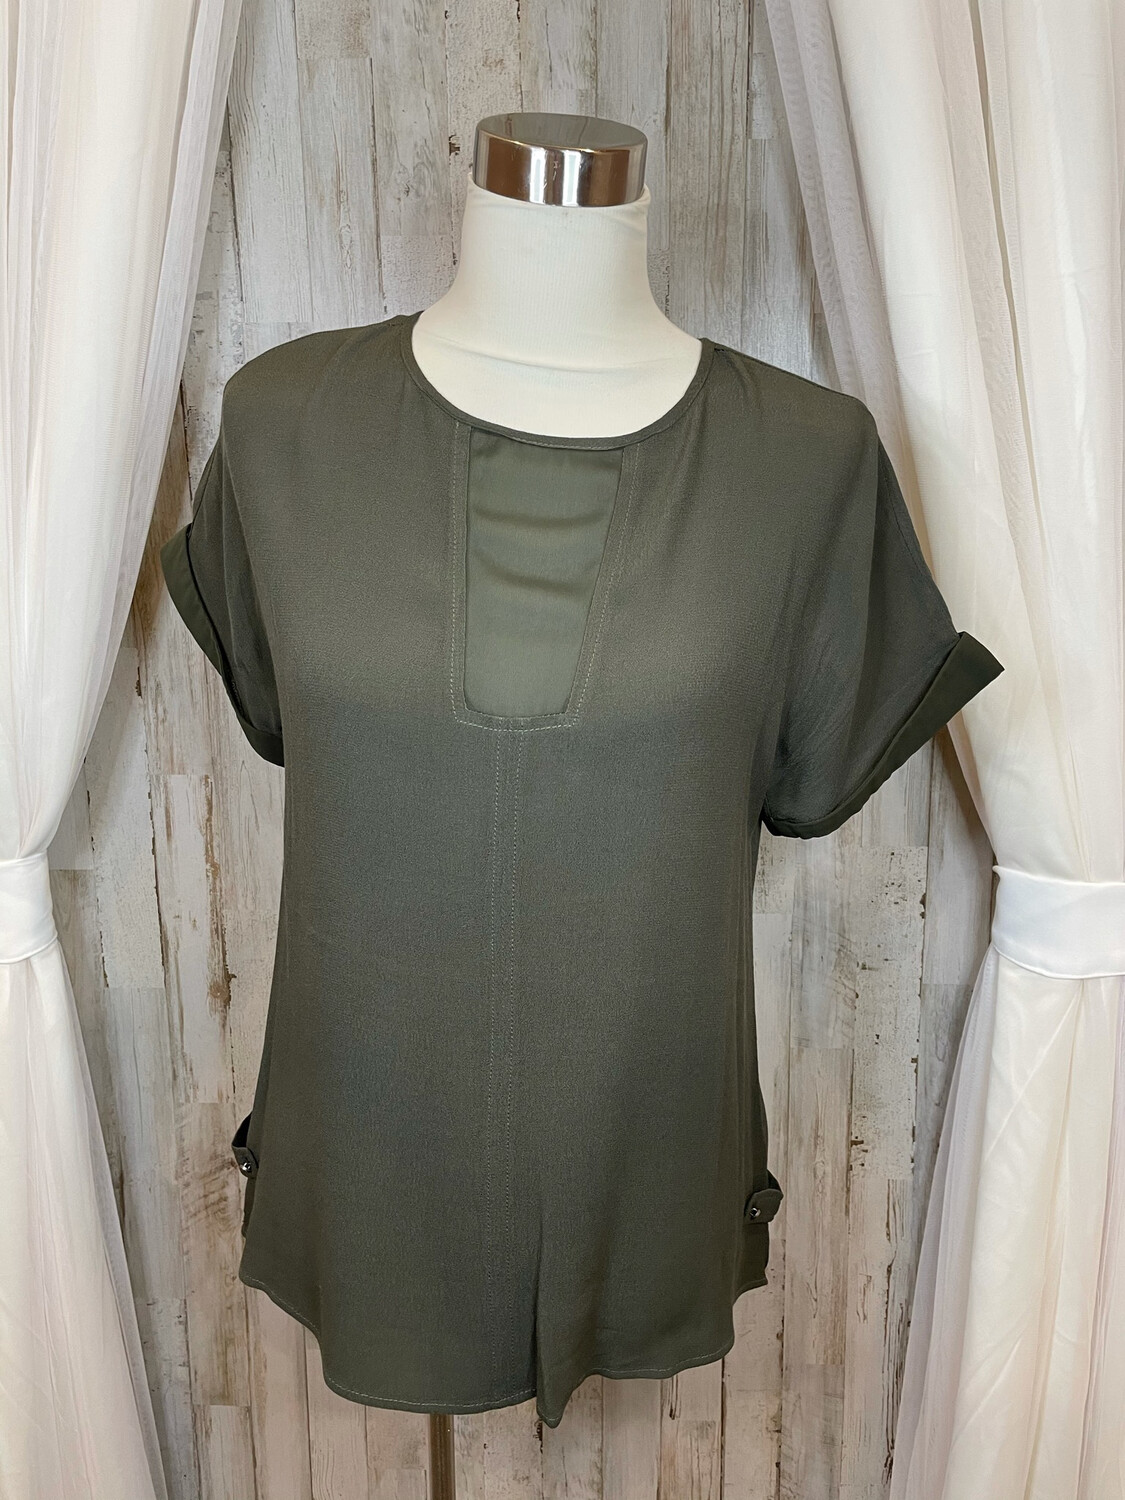 Doe + Rae Olive Top w/Sheer Accent - S